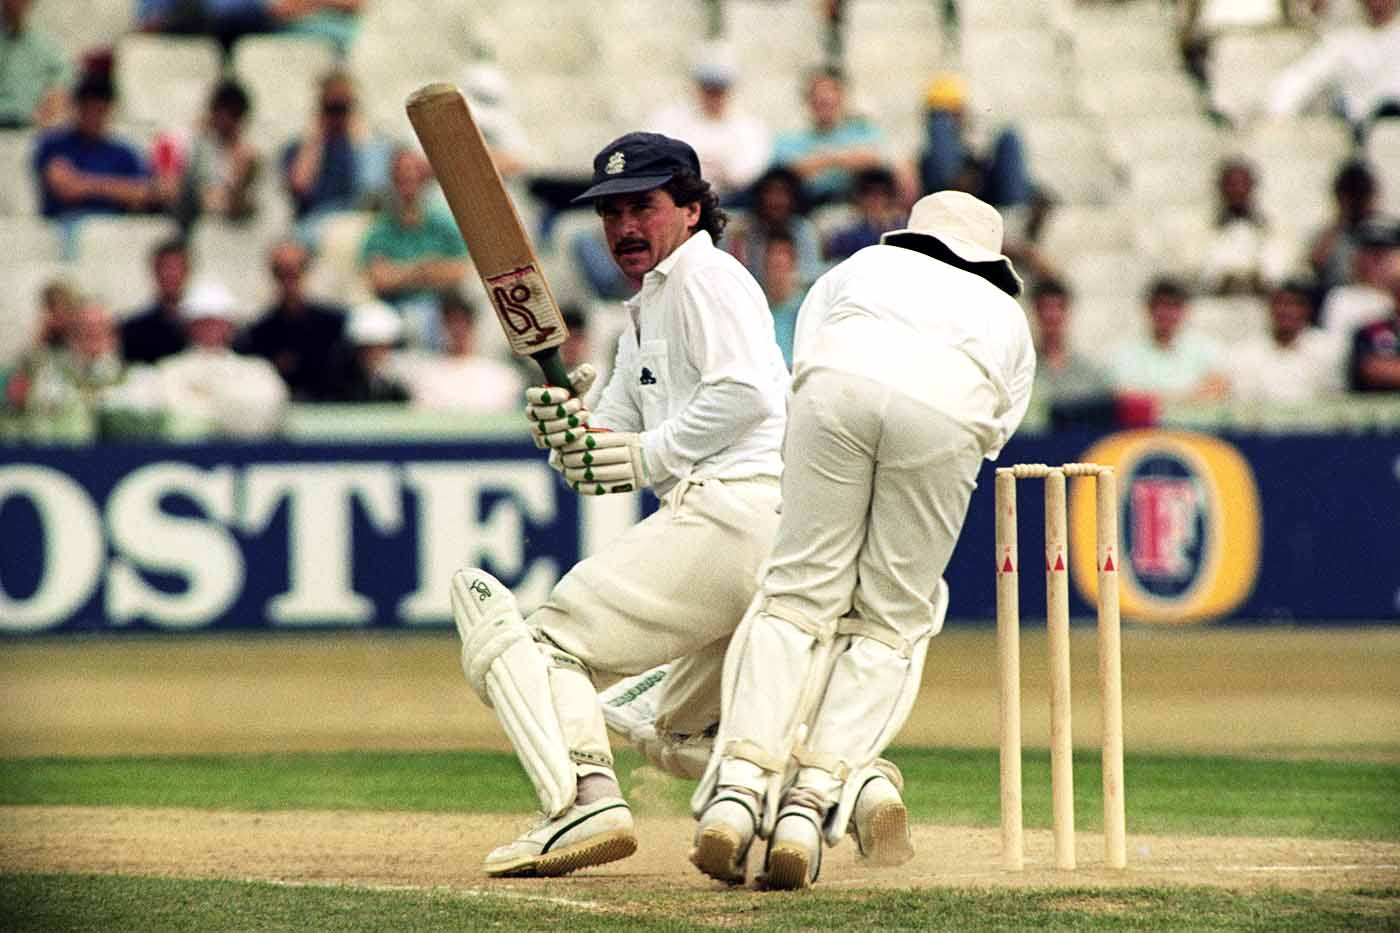 When England needed quick second-innings runs to declare, Allan Lamb was their man - his 141-ball 109 helped them set India a target of 408